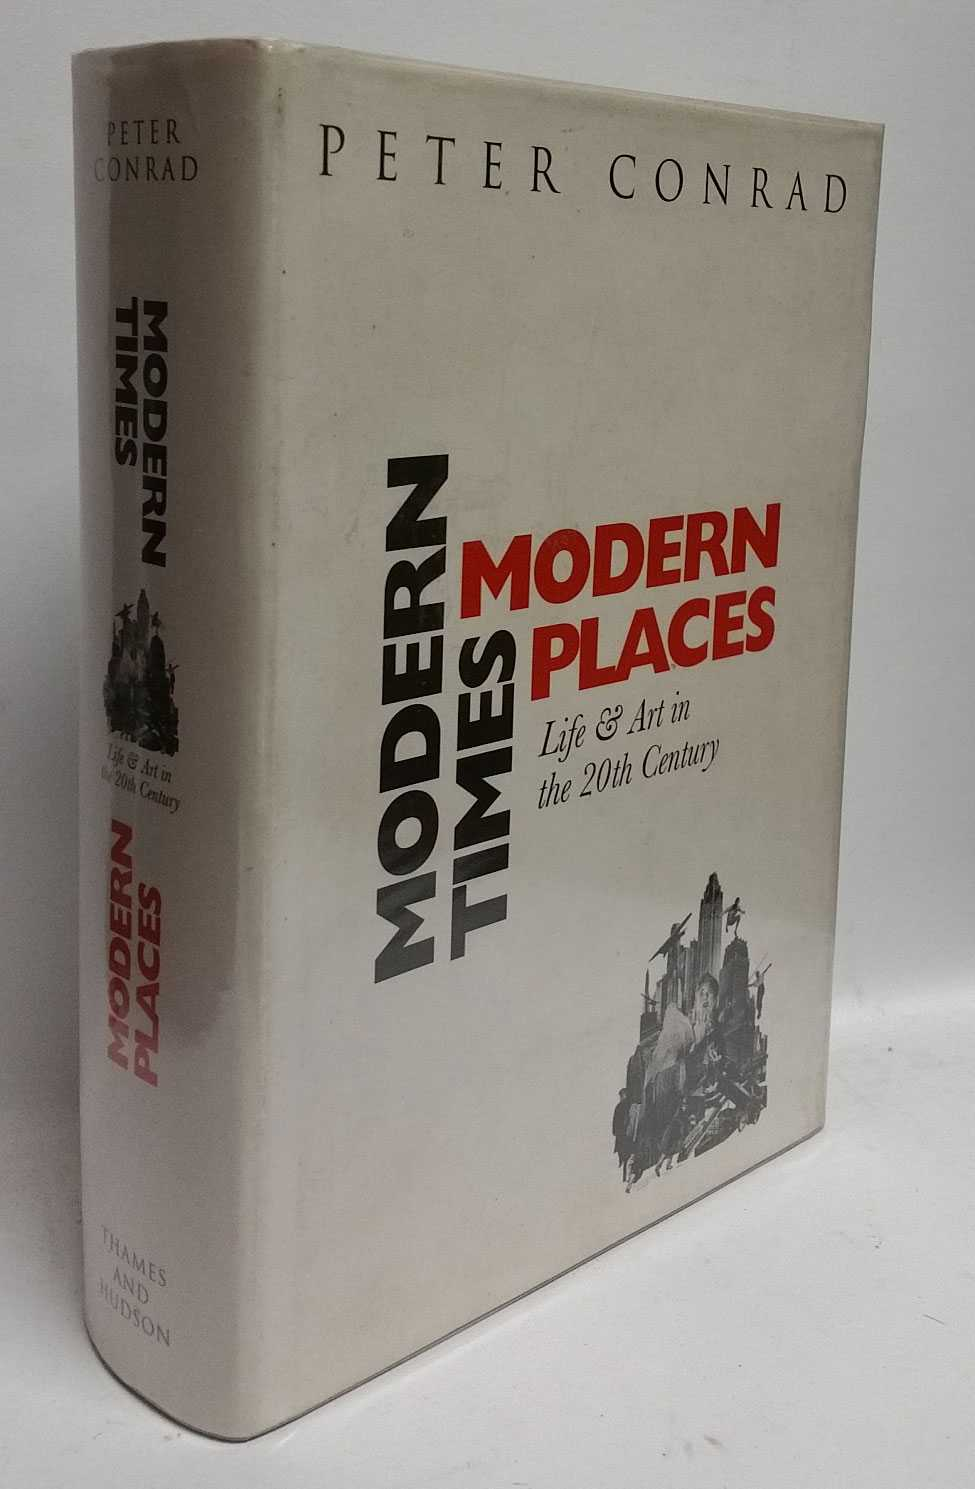 Modern Times, Modern Places: Life & Art in the 20th Century, Peter Conrad